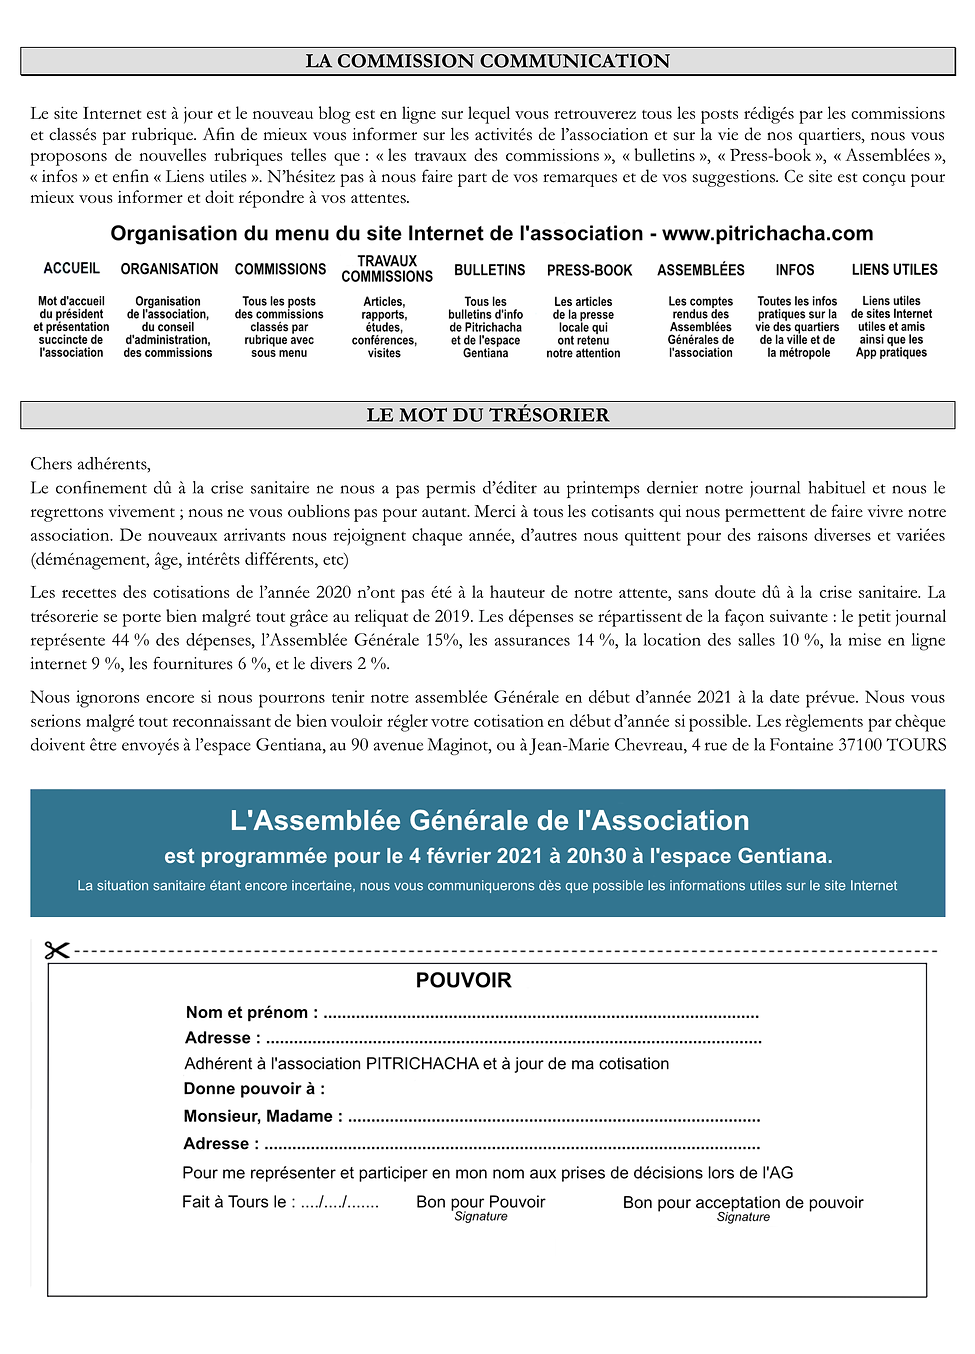 Bulletin N°24 Pitrichacha page 3.png